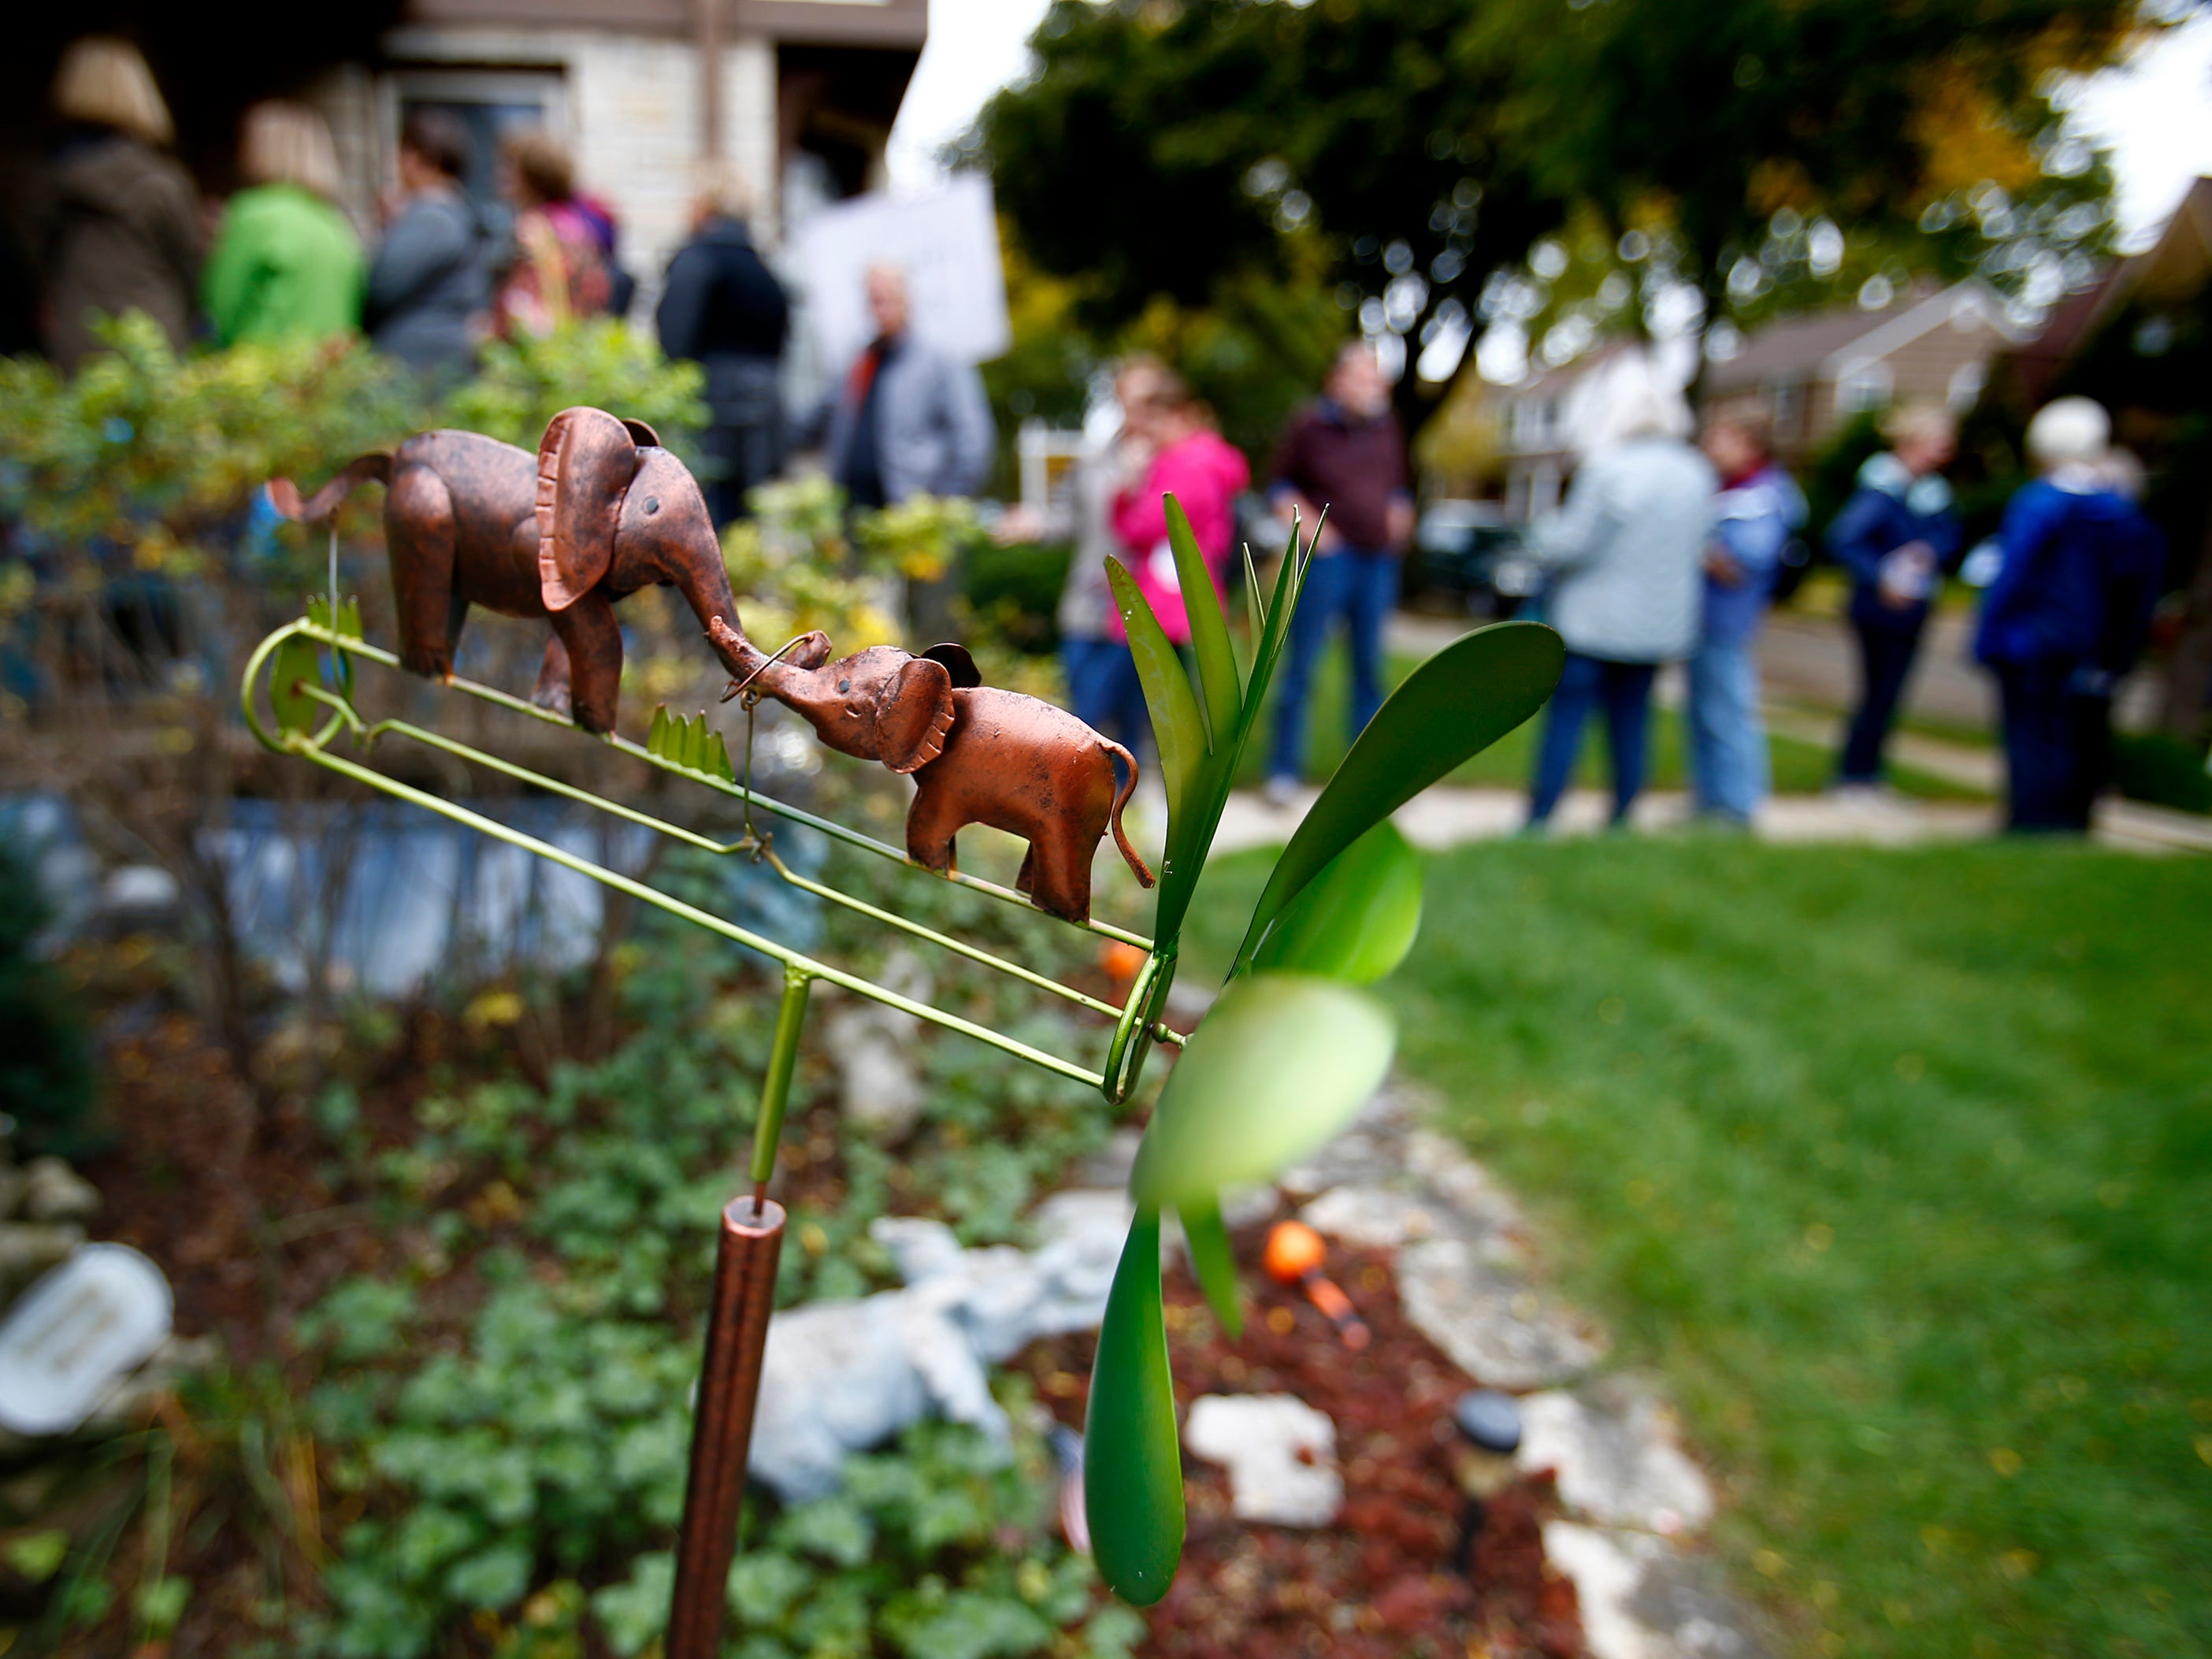 "People line up to tour the self-proclaimed Pachyderm Palace at 8121 Aberdeen Ct. with its elephant collection, like an elephant whirligig trunks and tails waggling in the breeze during the Wauwatosa Historical Society's Tour of Homes, ""Metamorphosis: Homes Re-imagined,"" on Oct. 6."